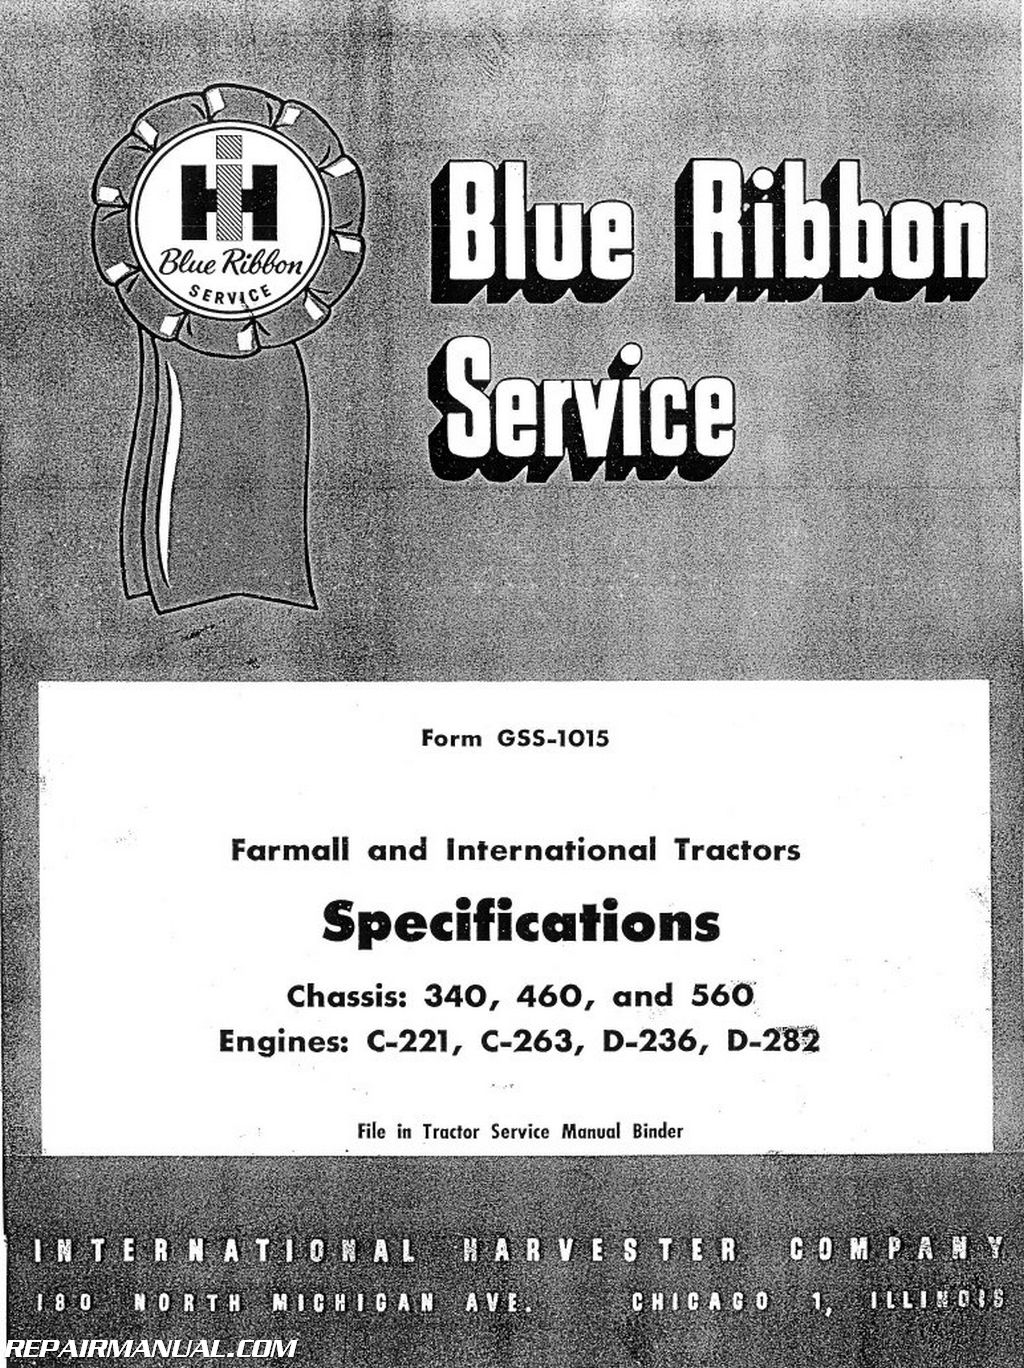 international harvester 340 460 560 tractor service manual two rh repairmanual com Shop Manuals 1404 Shop Manual Design